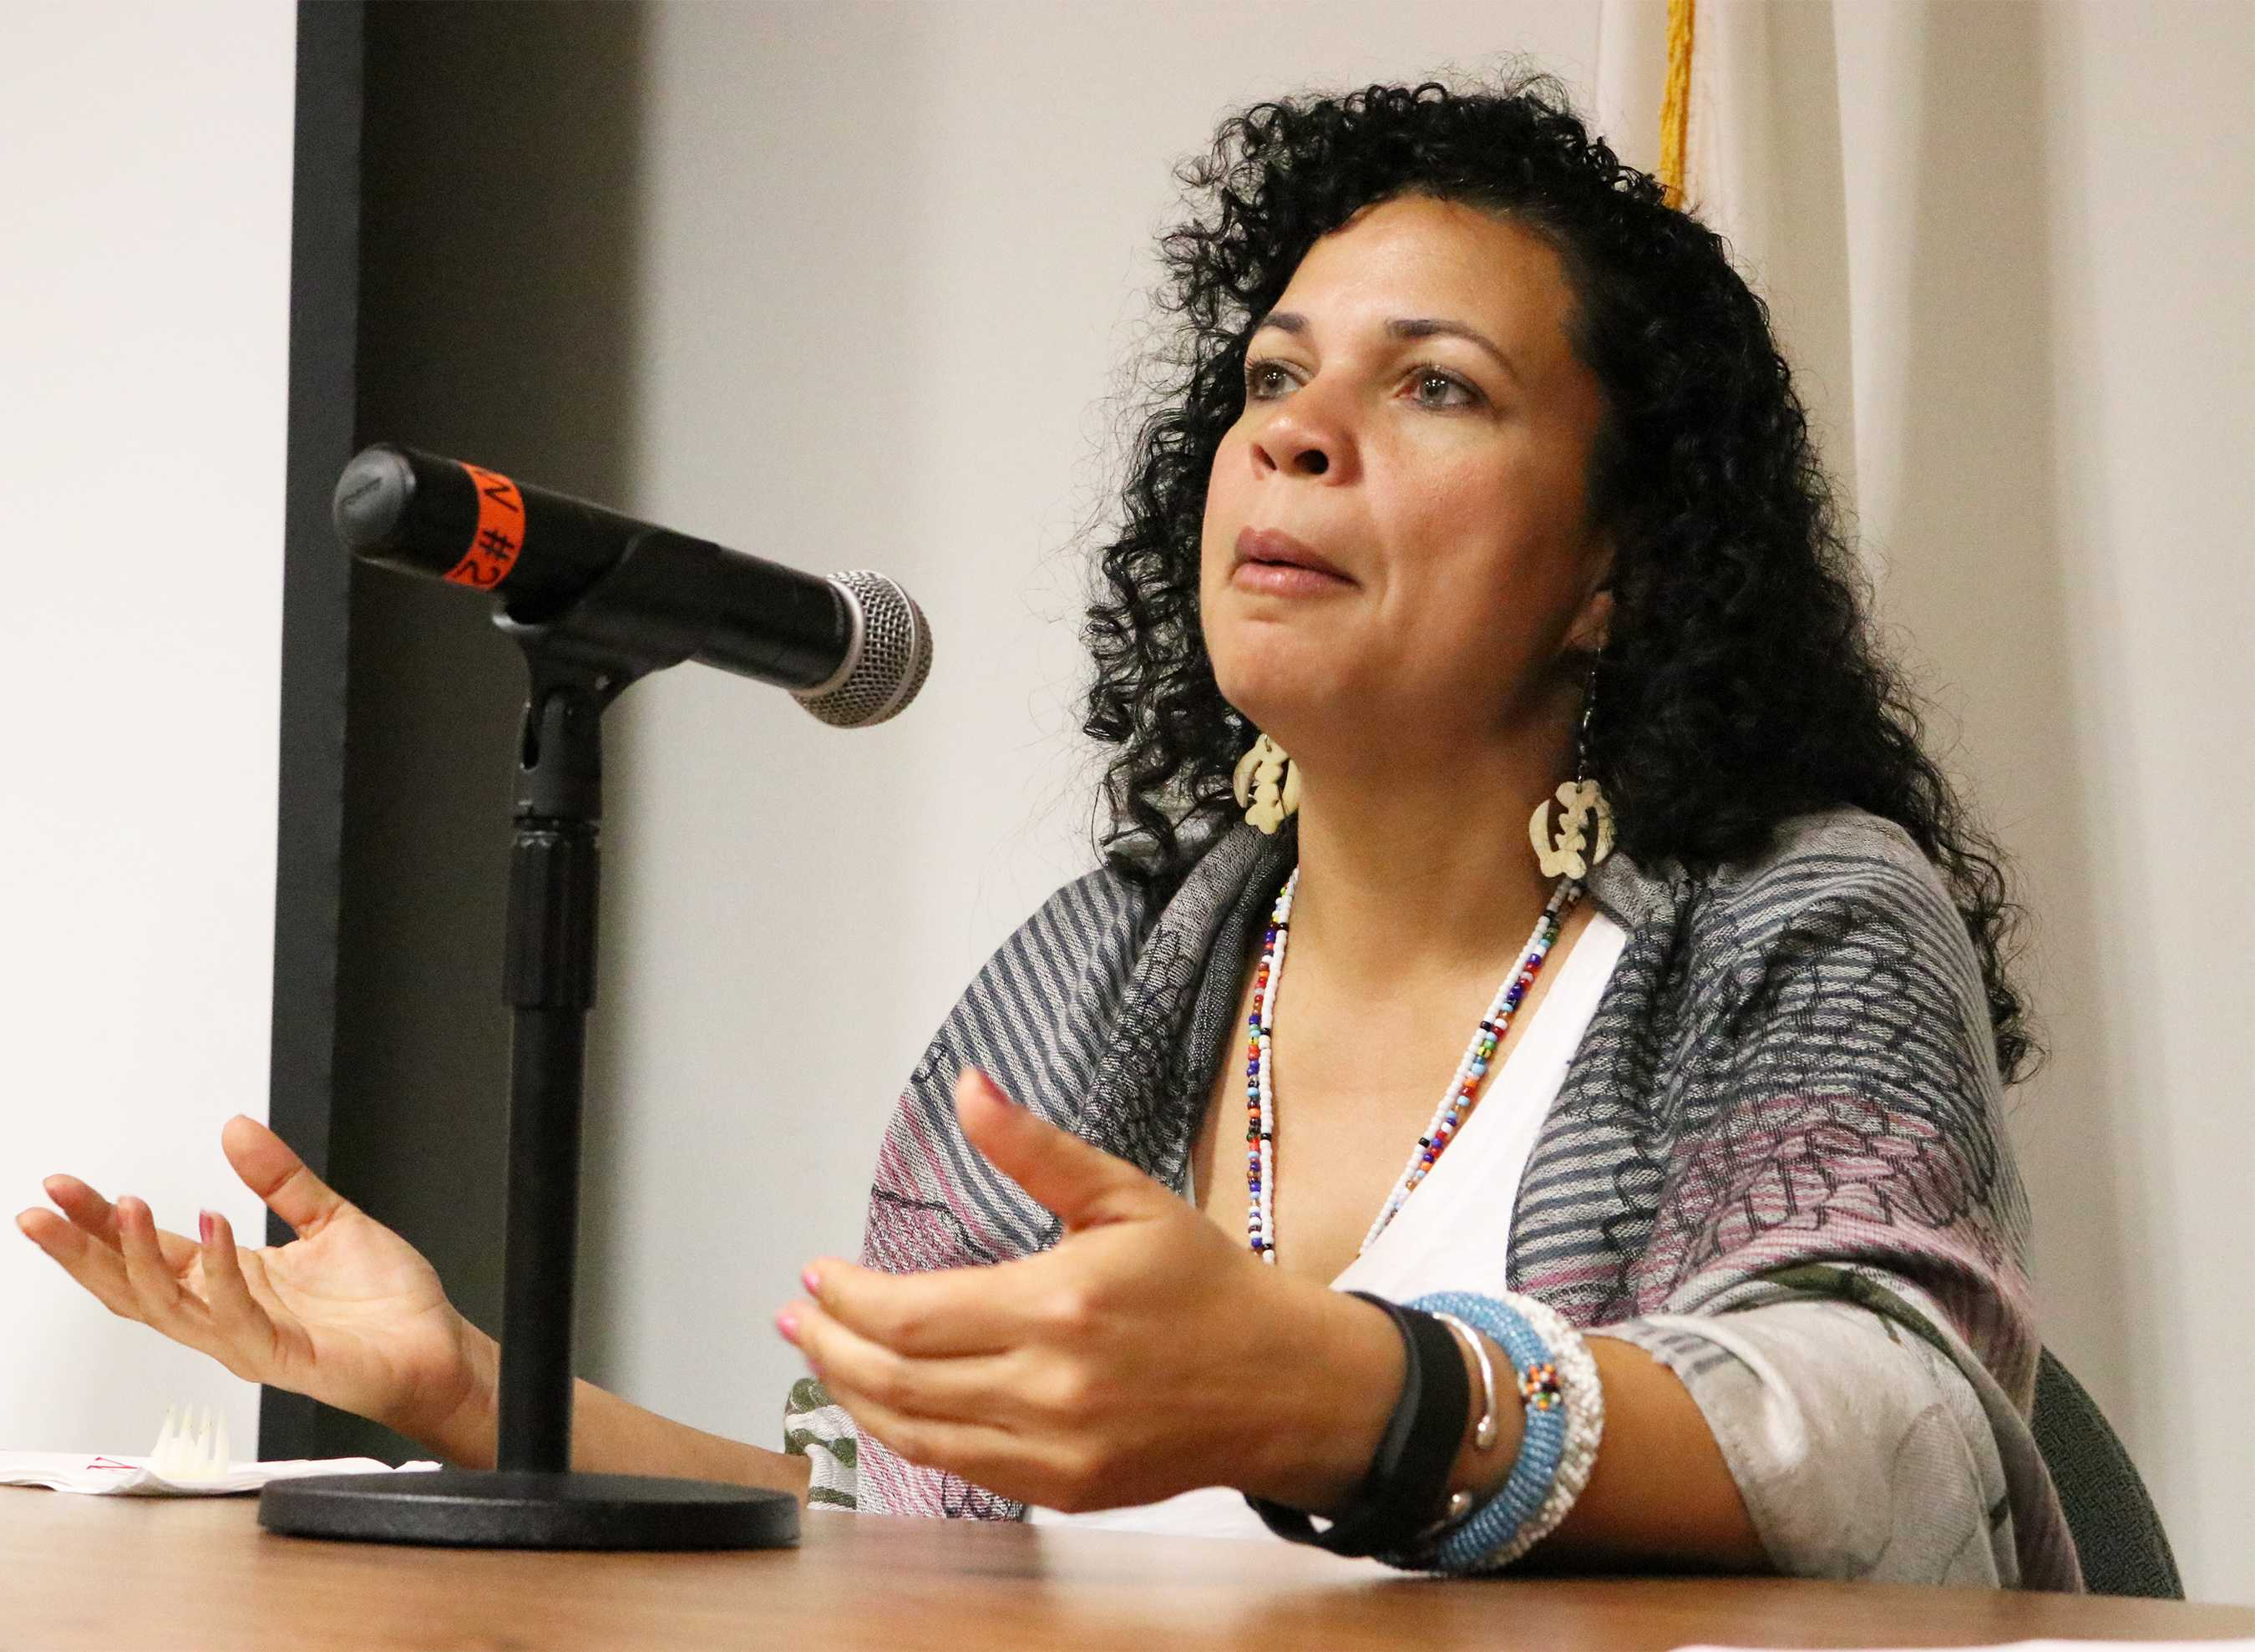 Professor leads discussion at screening